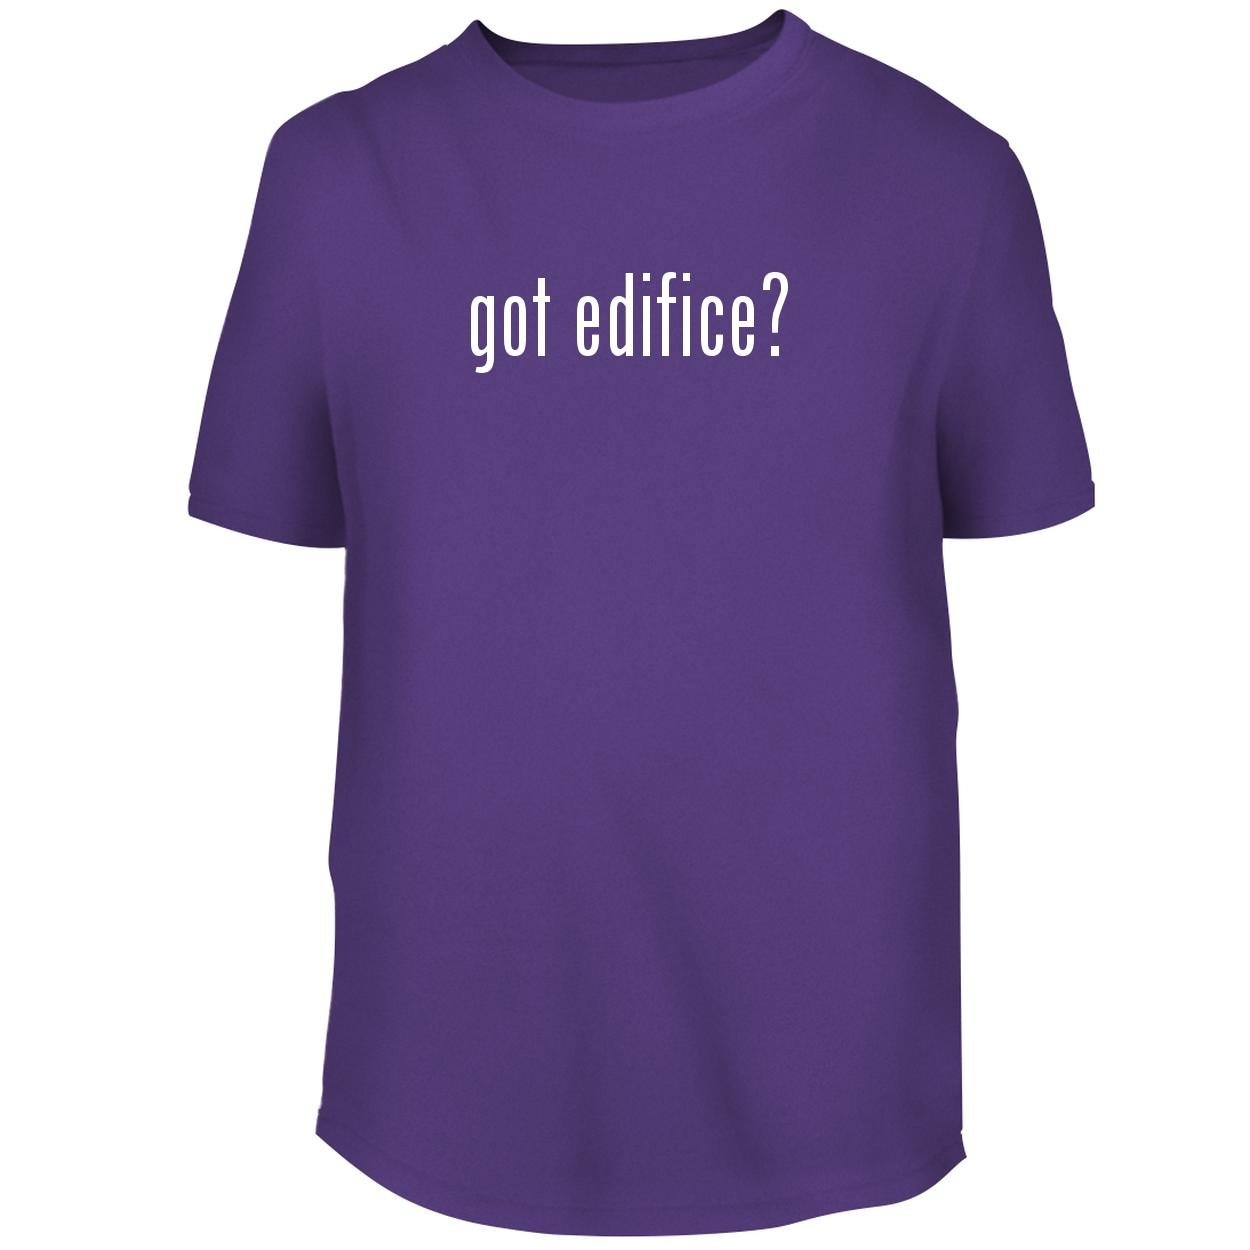 BH Cool Designs got Edifice? - Men's Graphic Tee, Purple, X-Large